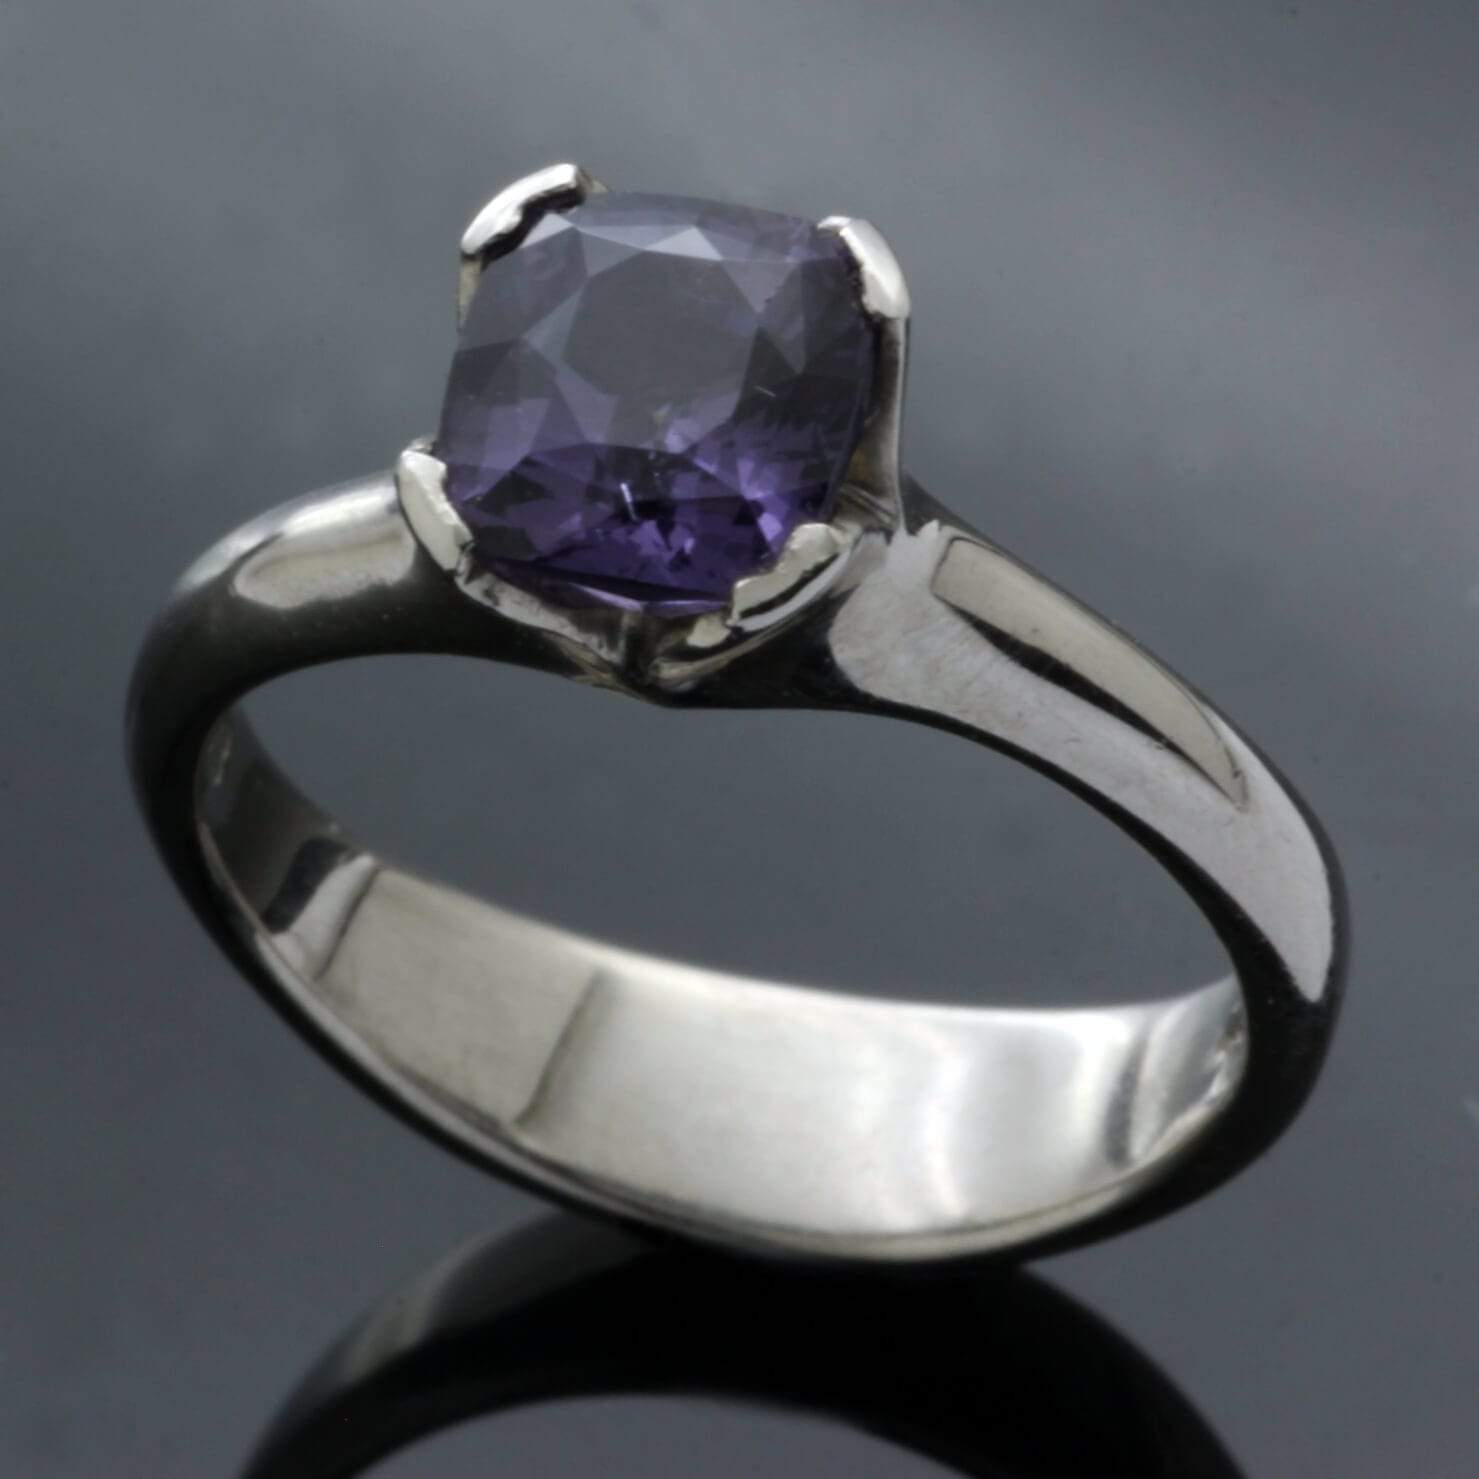 Spinel gemstone set in Palladium handmade engagement ring